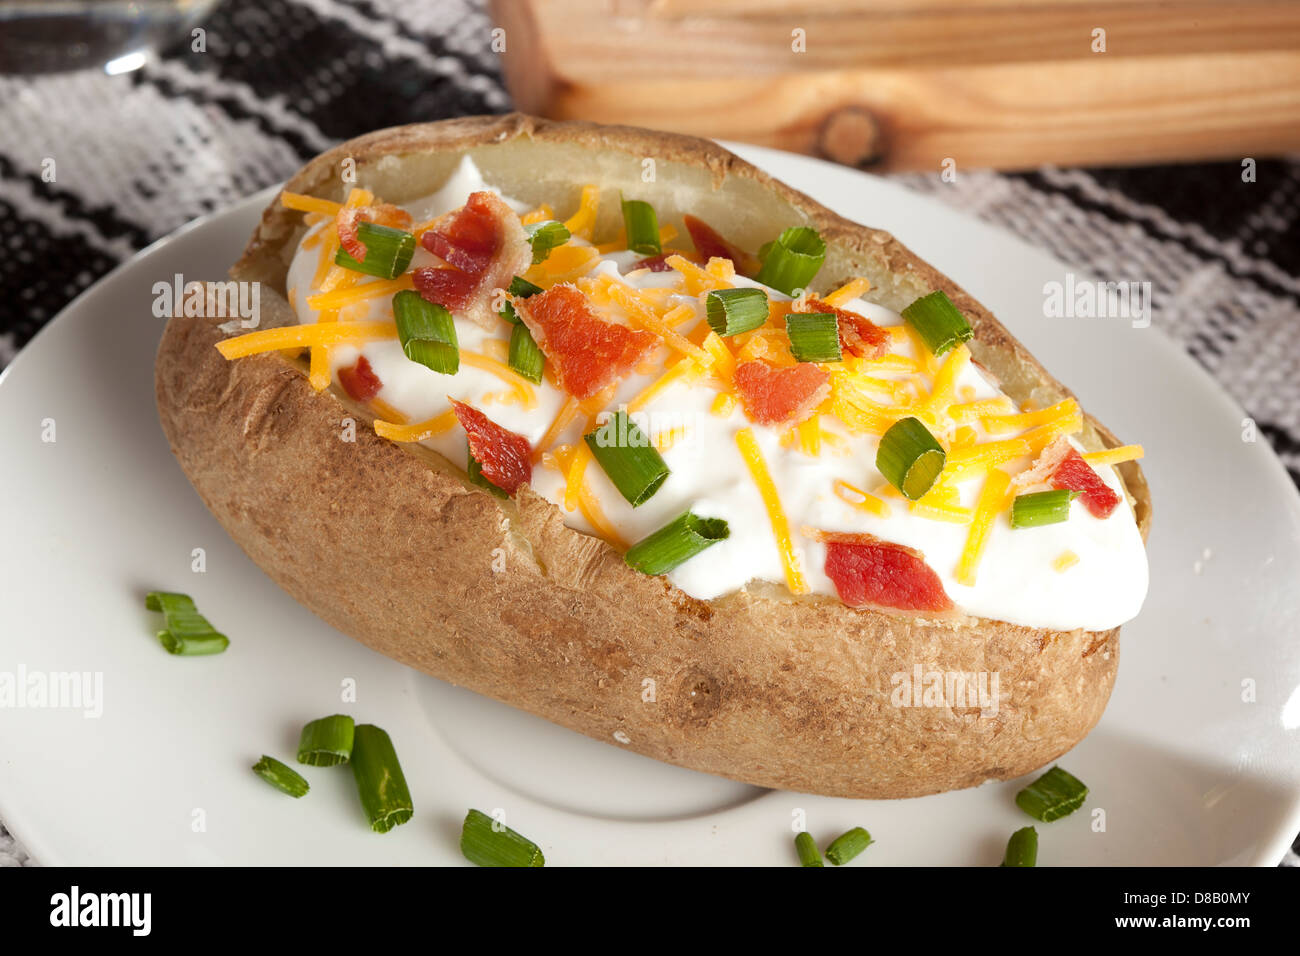 Hot Baked Potato with chives, cheese, and sour cream - Stock Image